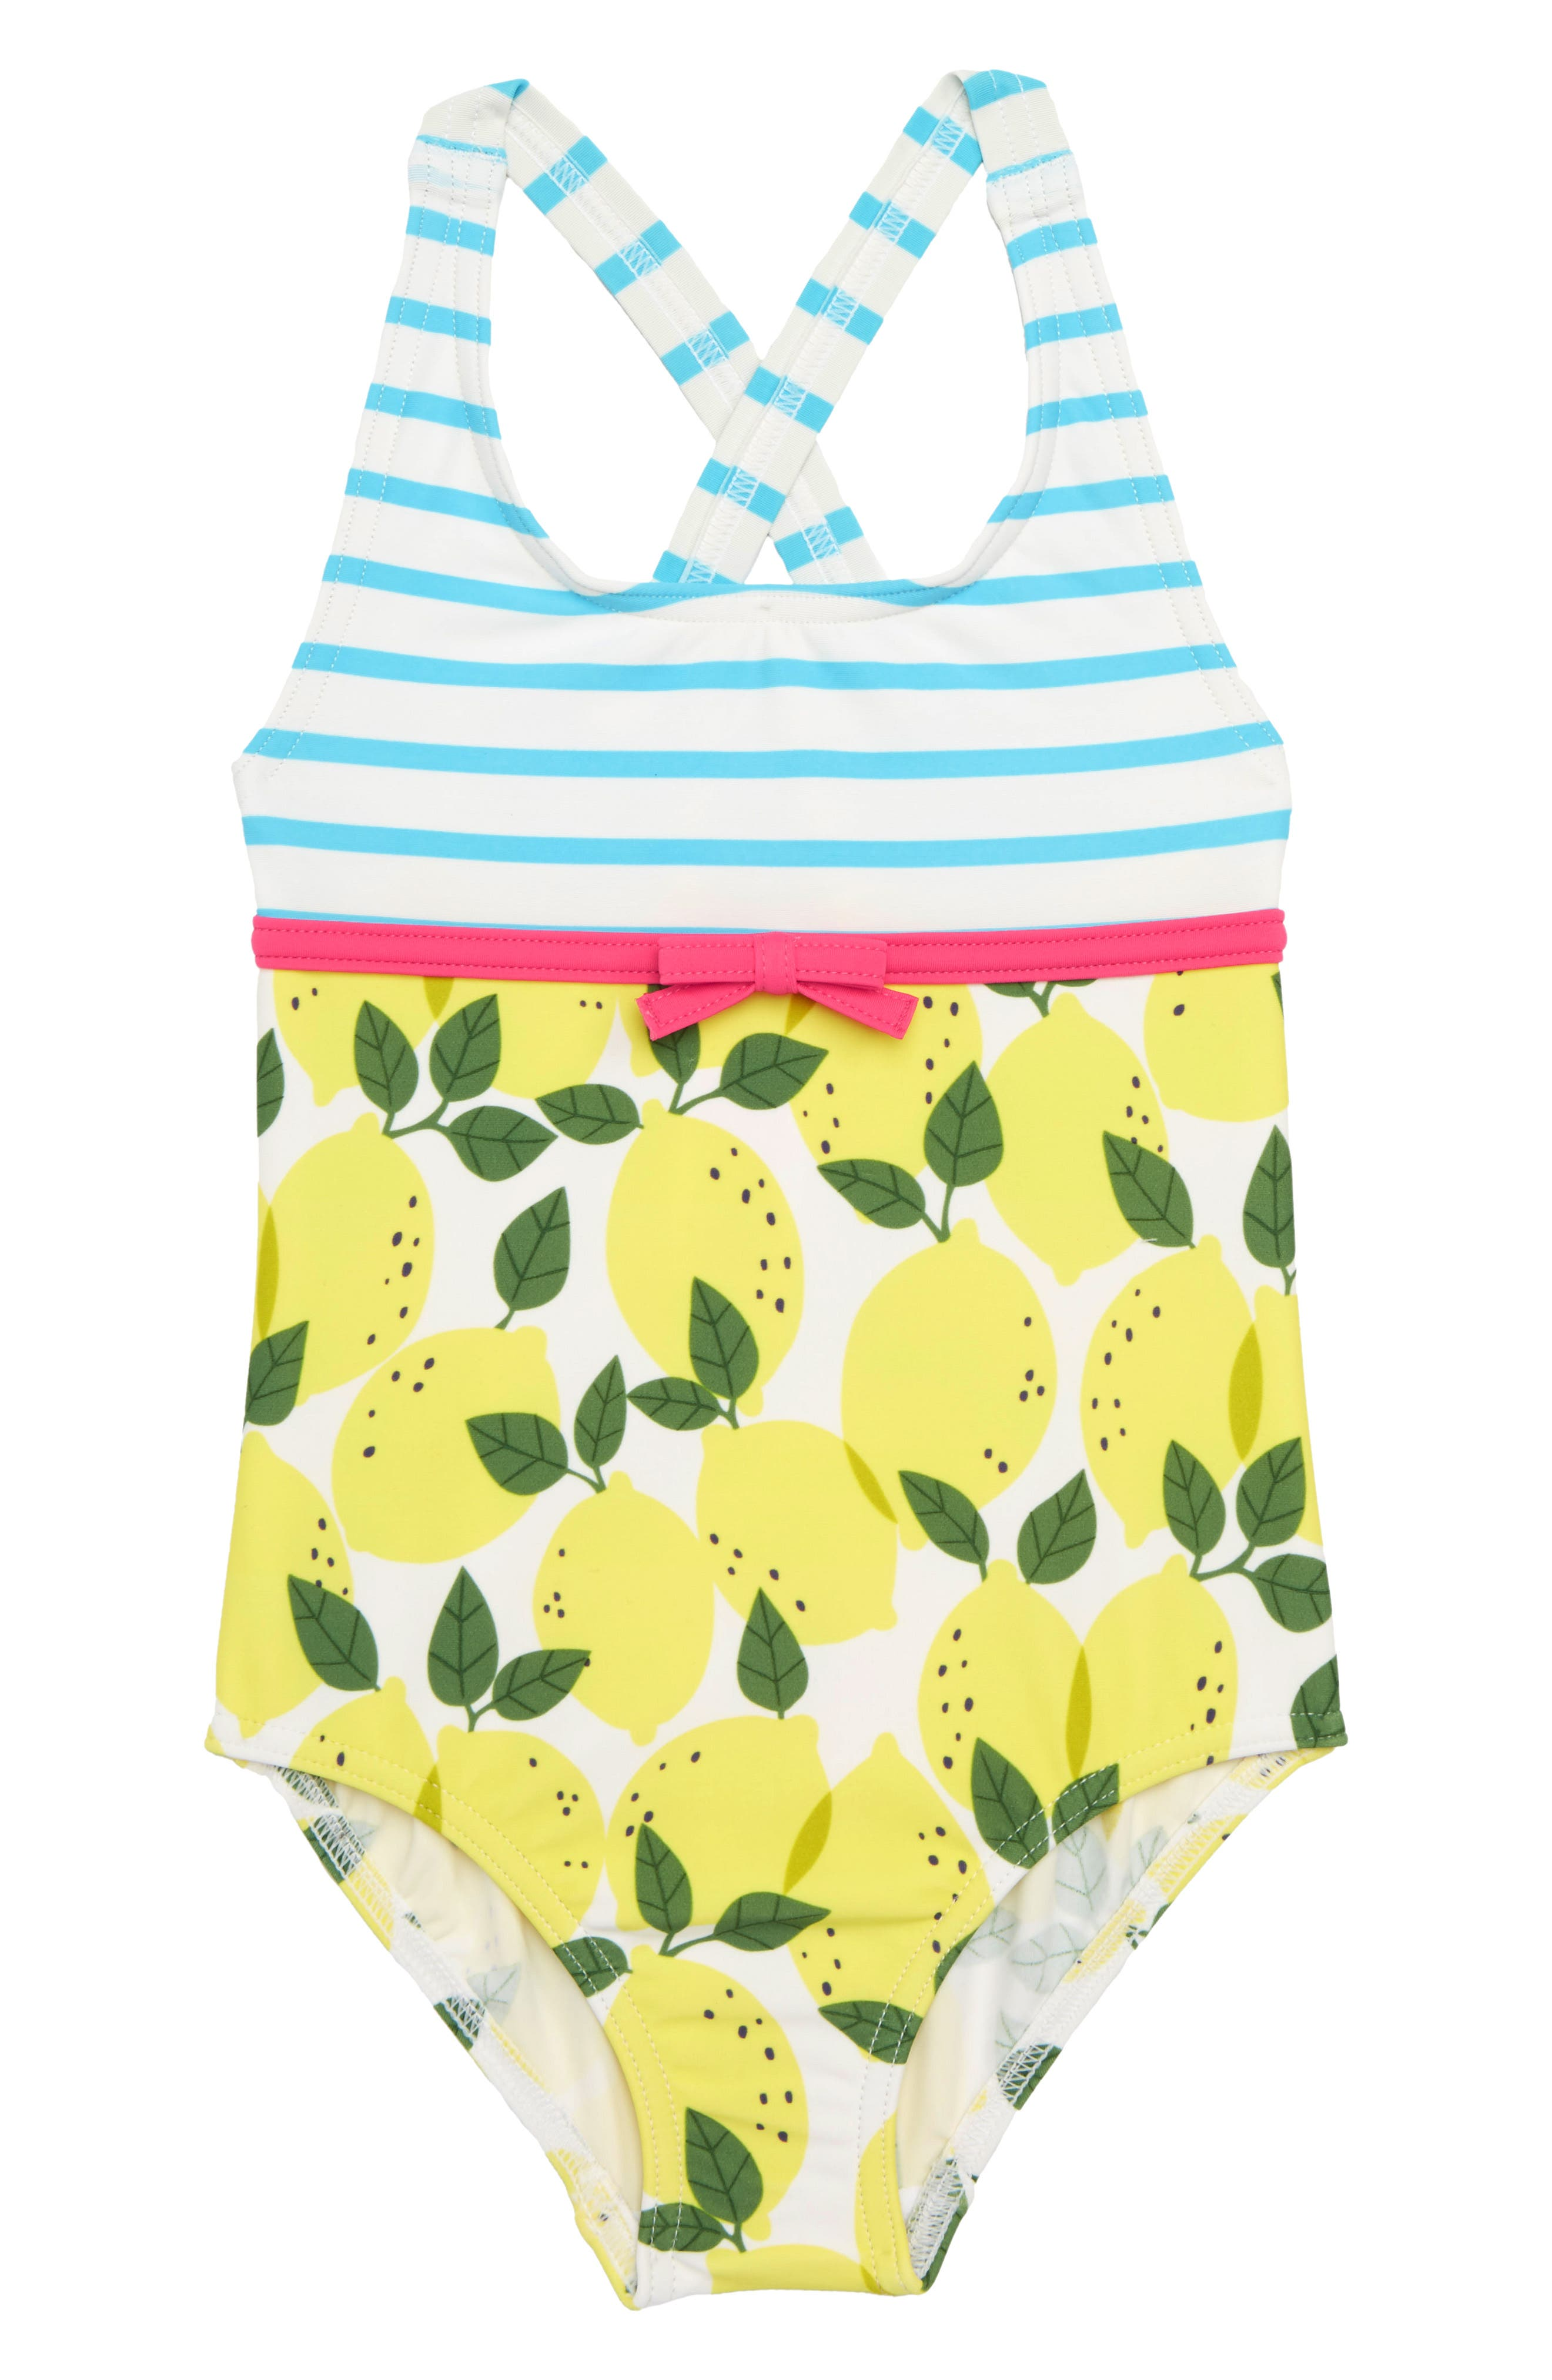 Hotchpotch One-Piece Swimsuit,                             Main thumbnail 1, color,